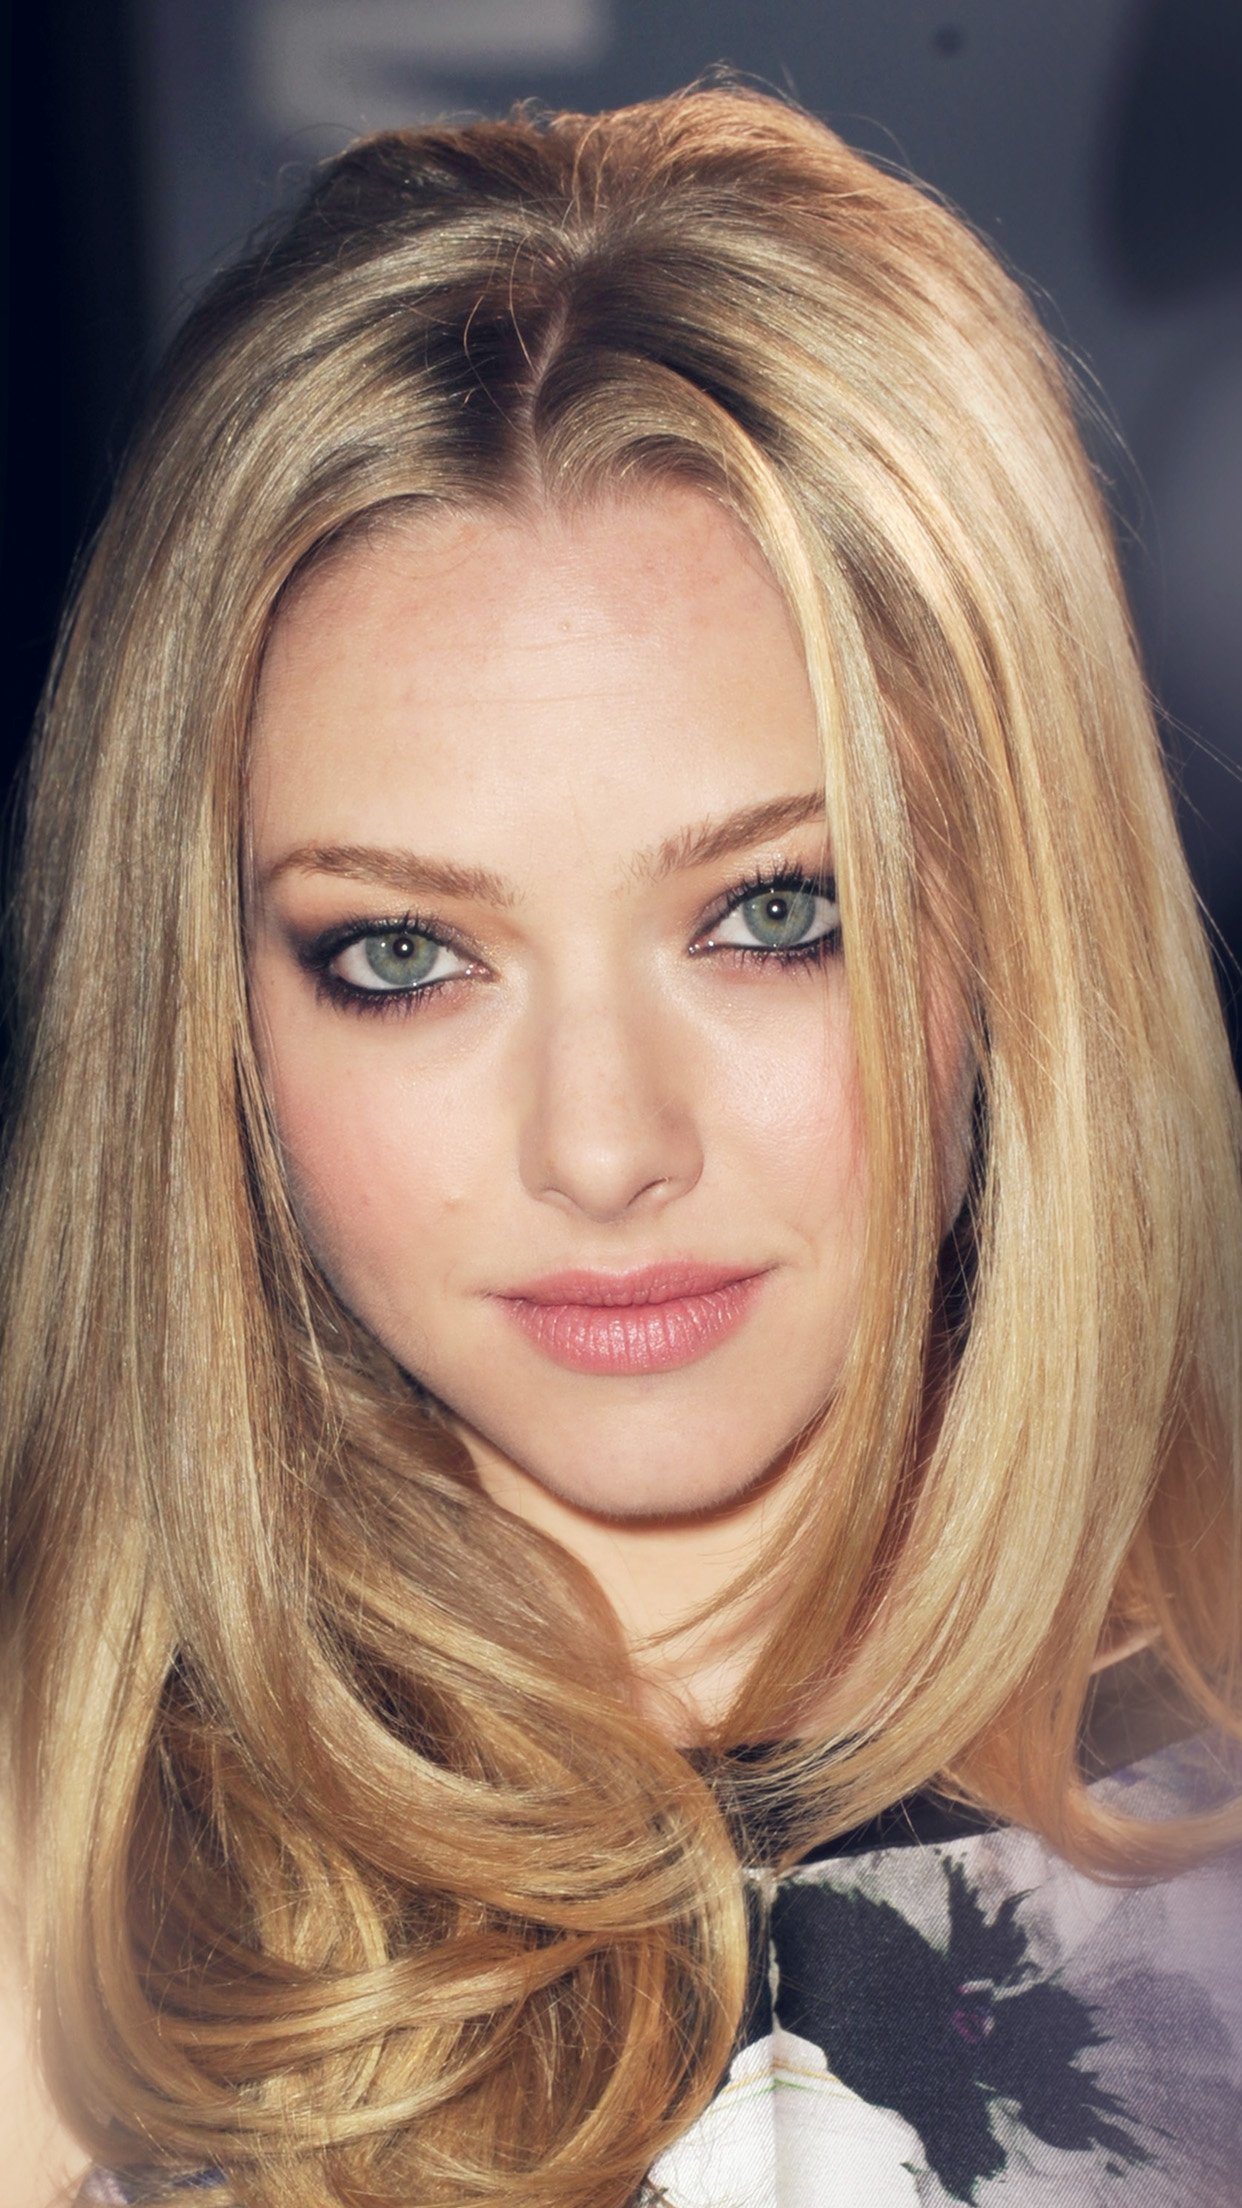 Amanda Seyfried Hollywood Celebrity Android wallpaper